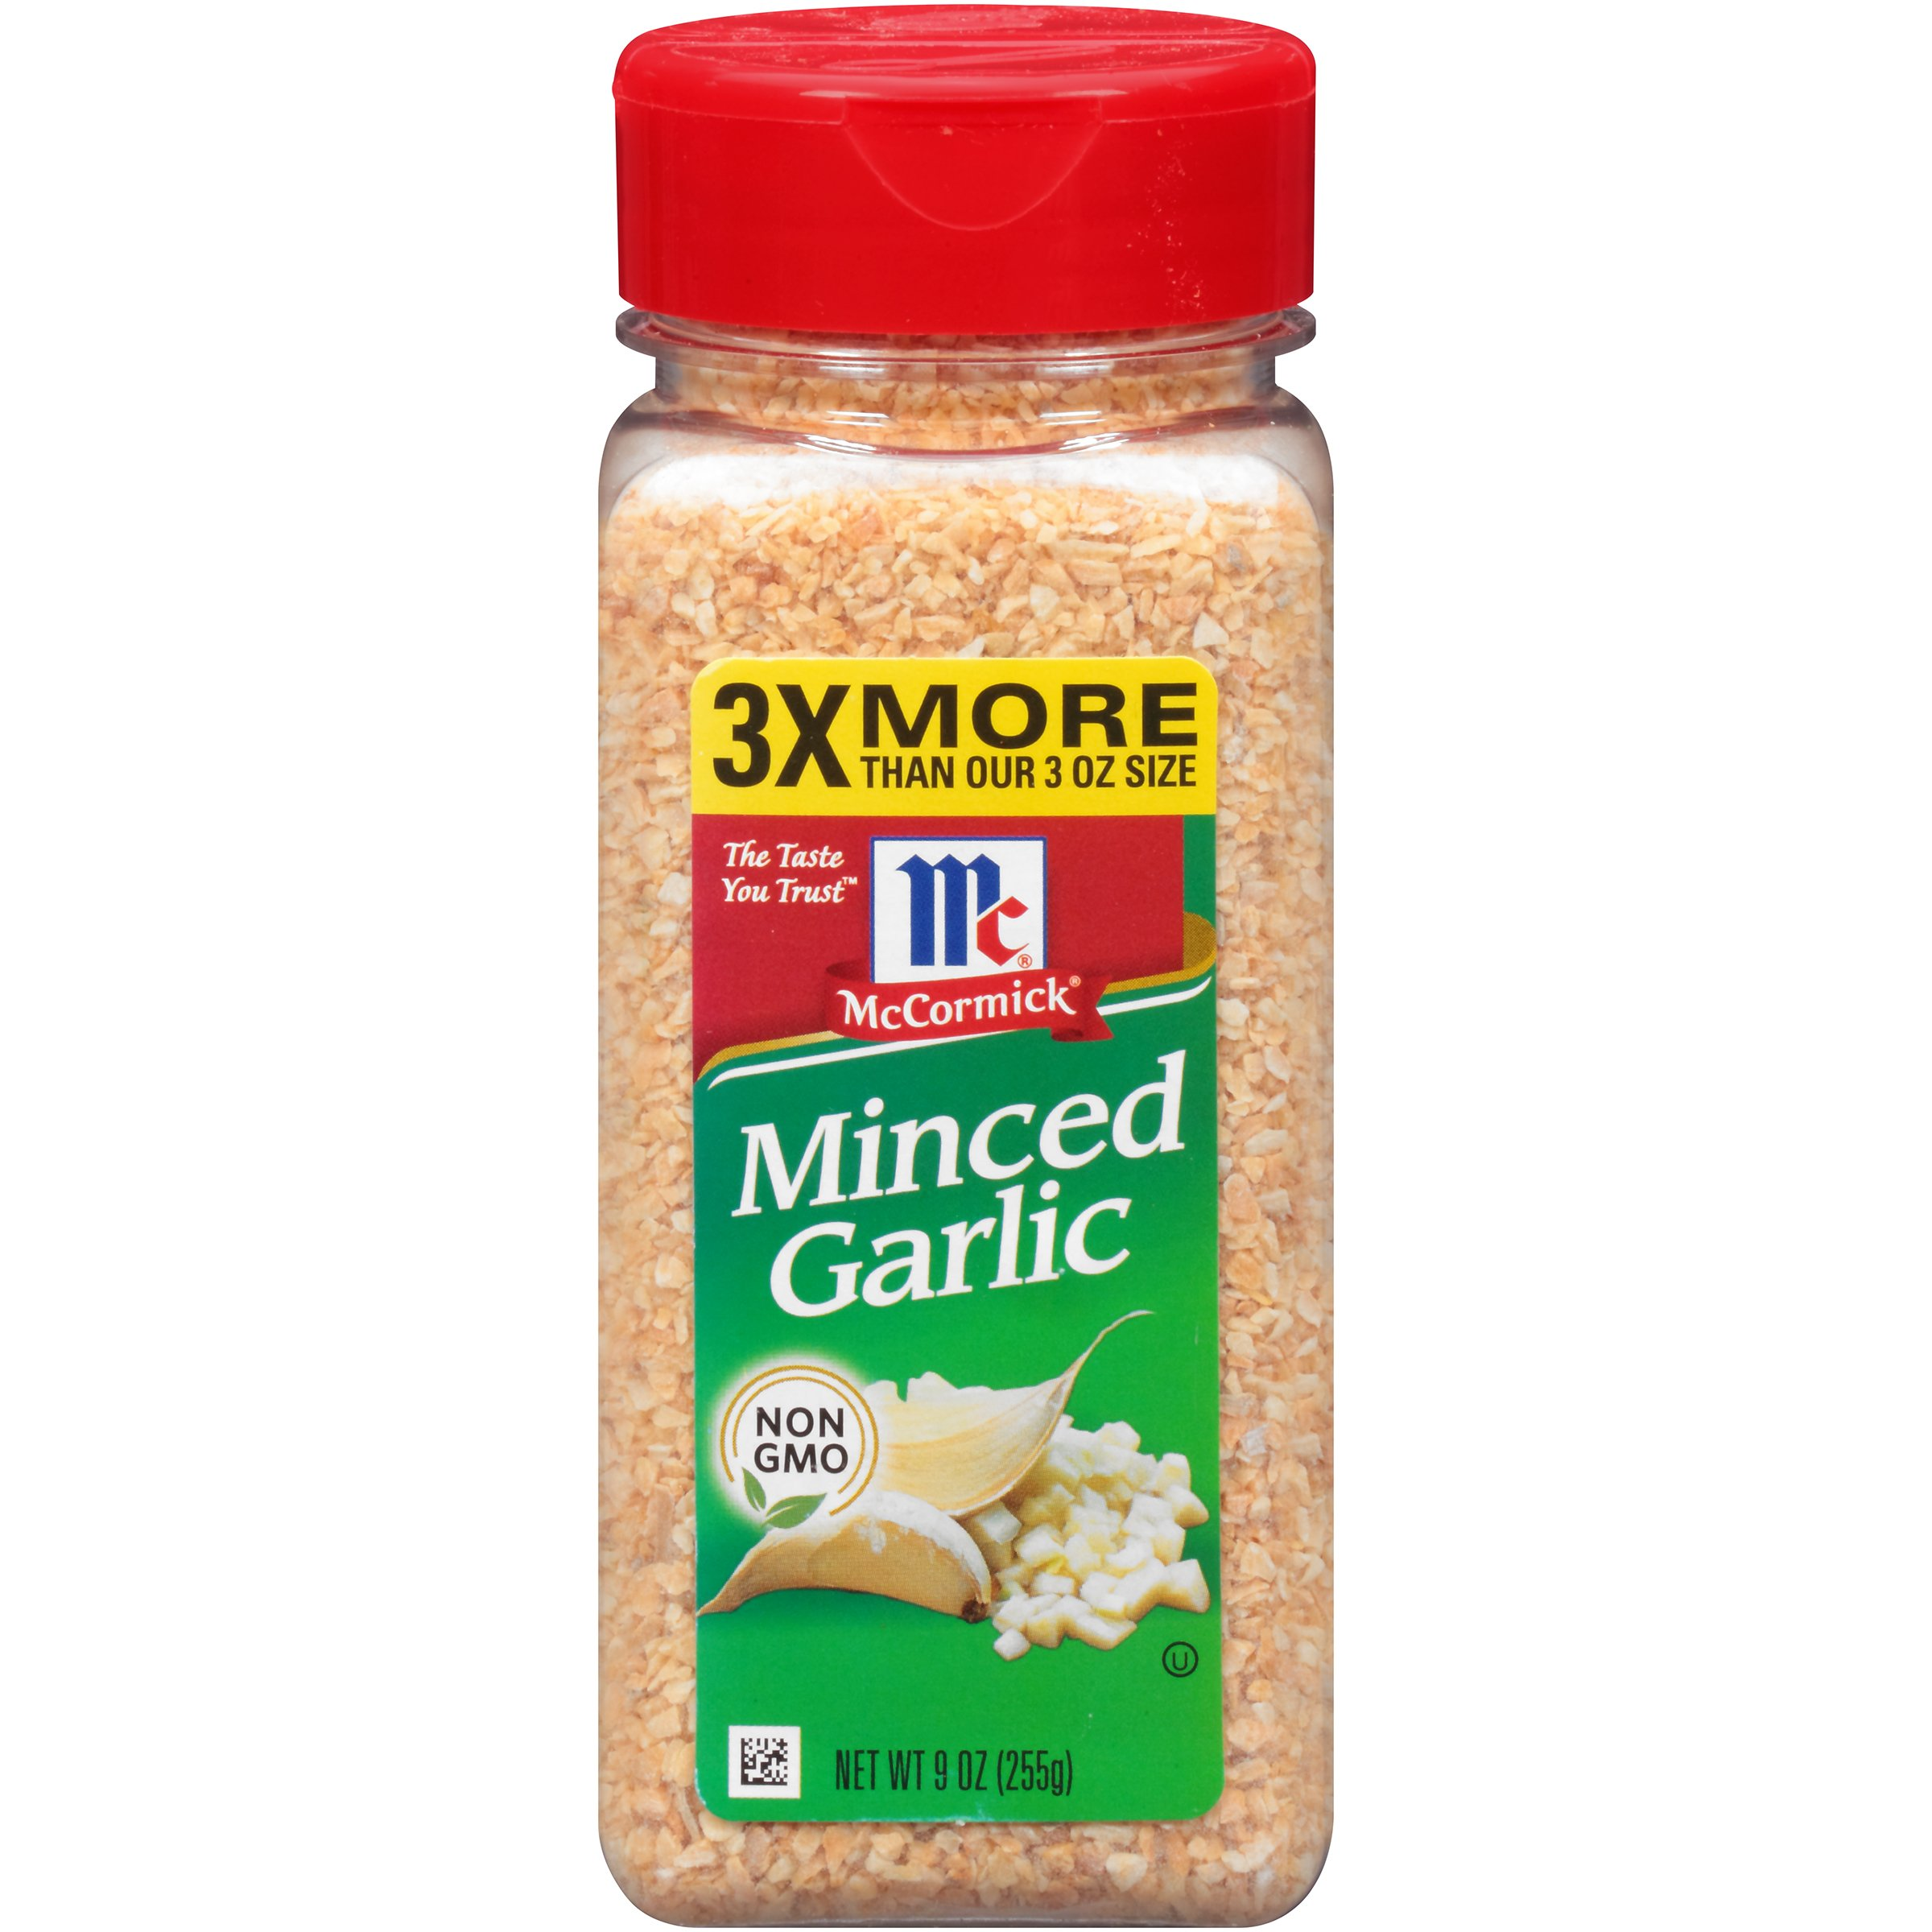 McCormick Minced Garlic, 9 oz